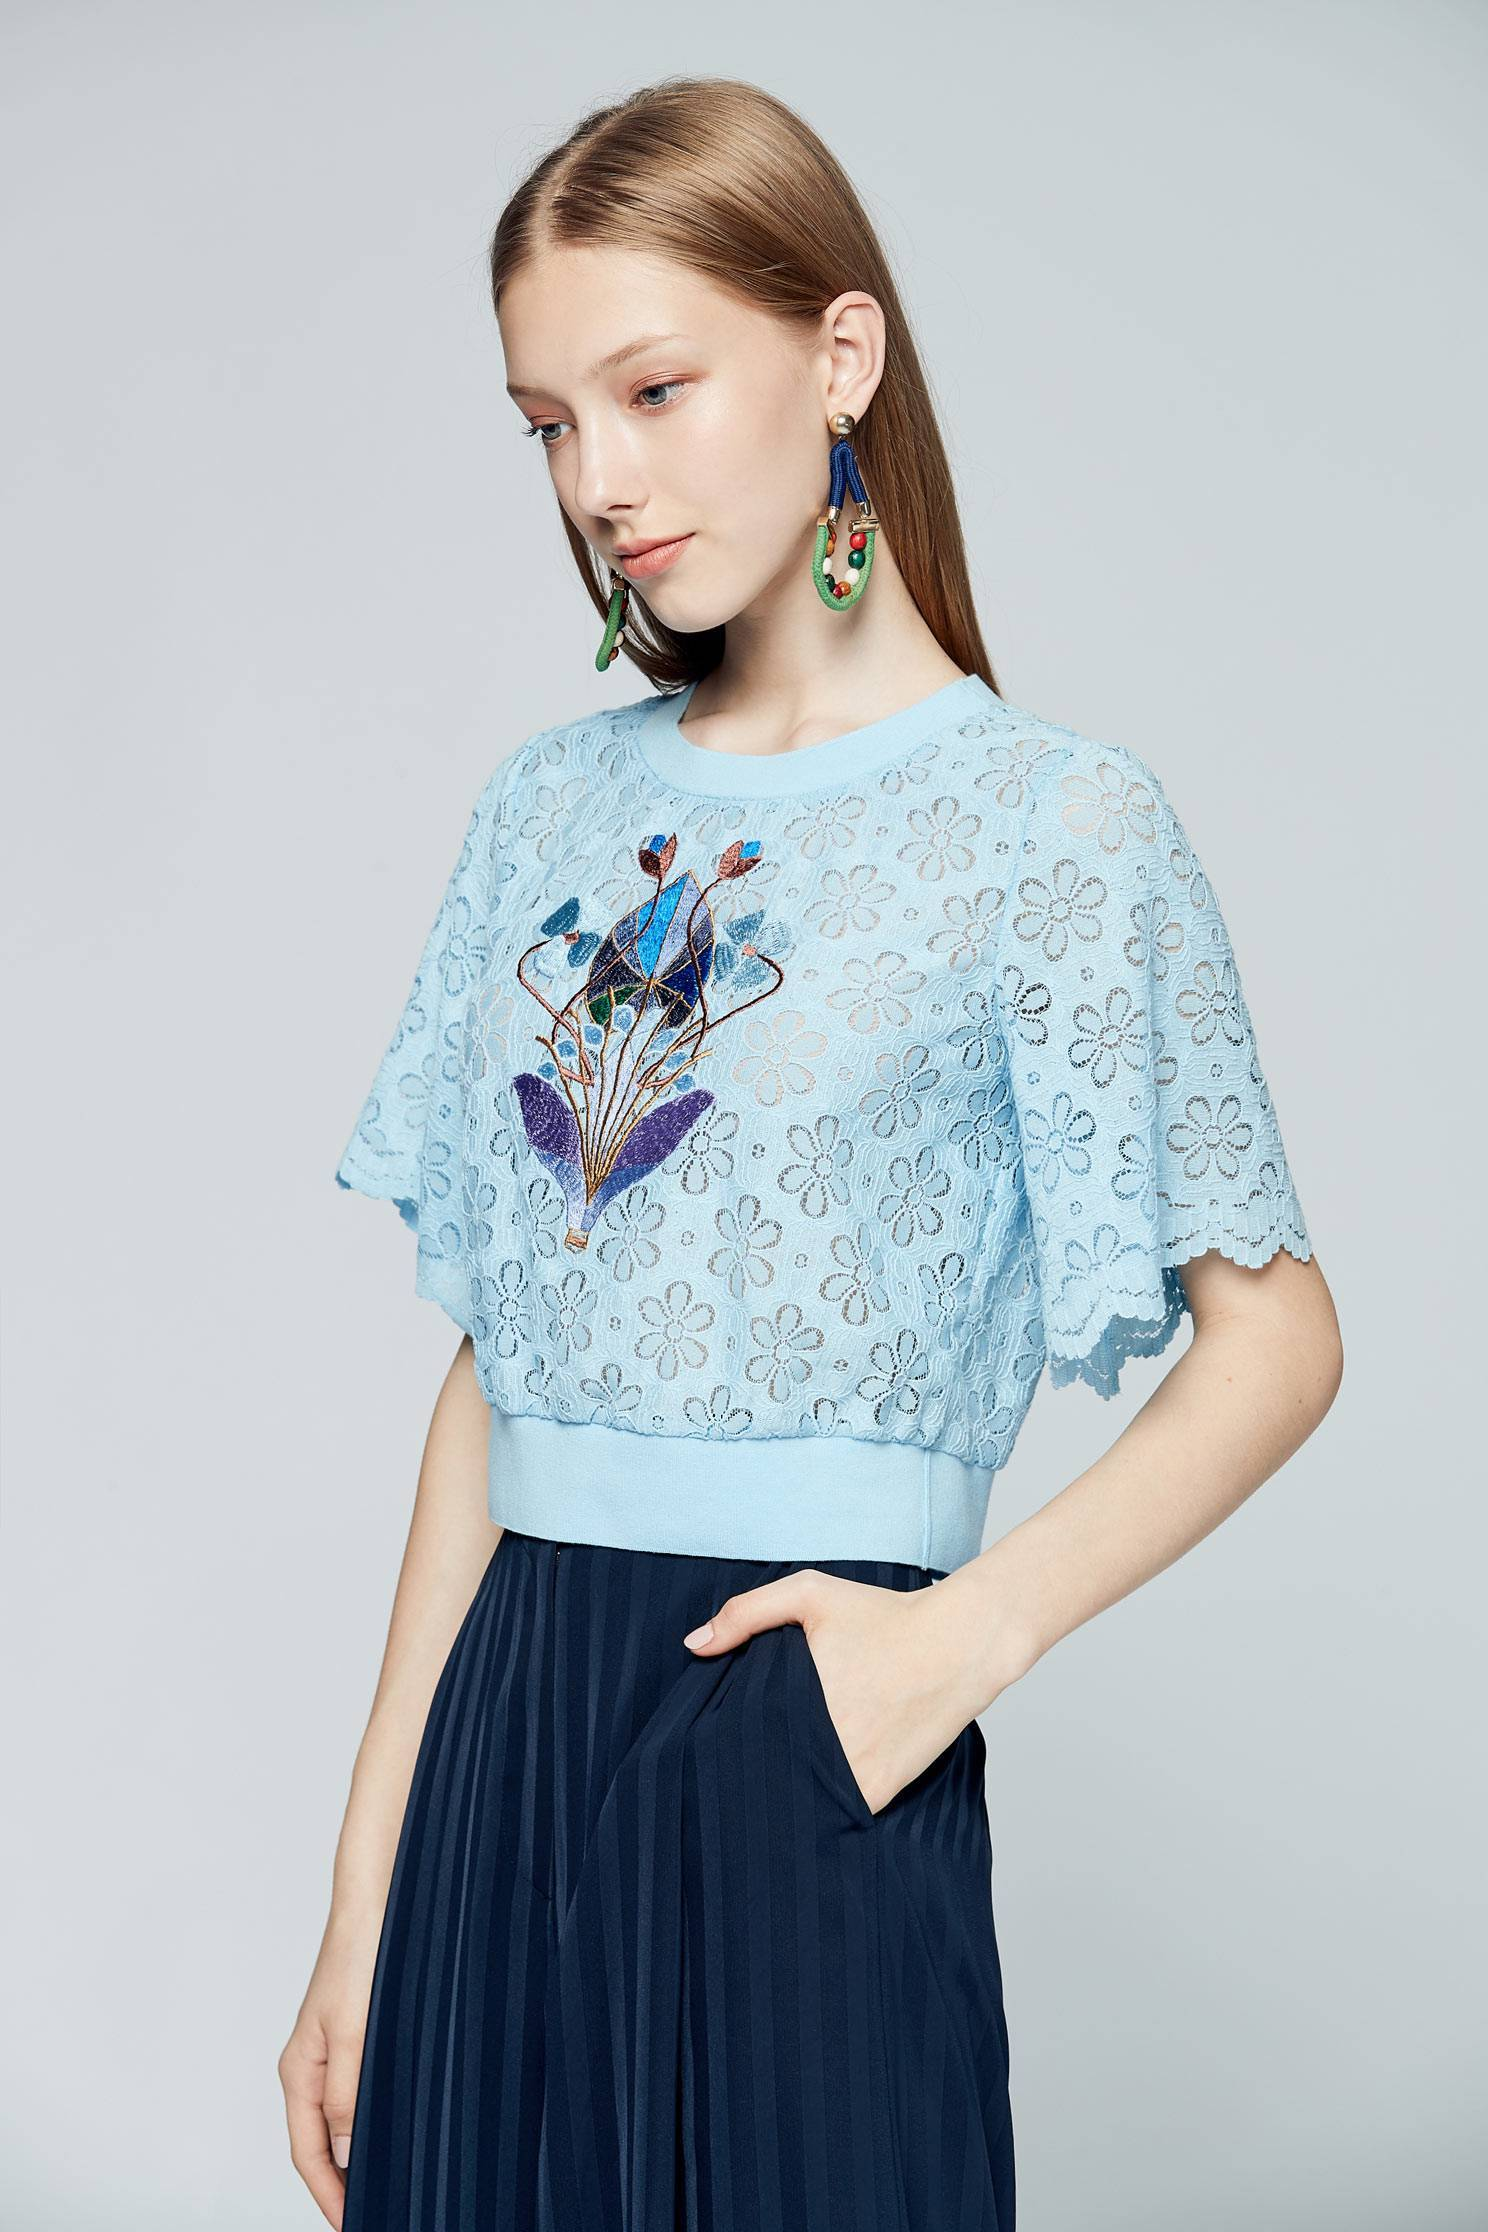 Full lace three-quarter sleeve top,3/4sleevetop,top,roundnecktop,shortsleevetop,lace,lacedtop,girlfriendsspringtour